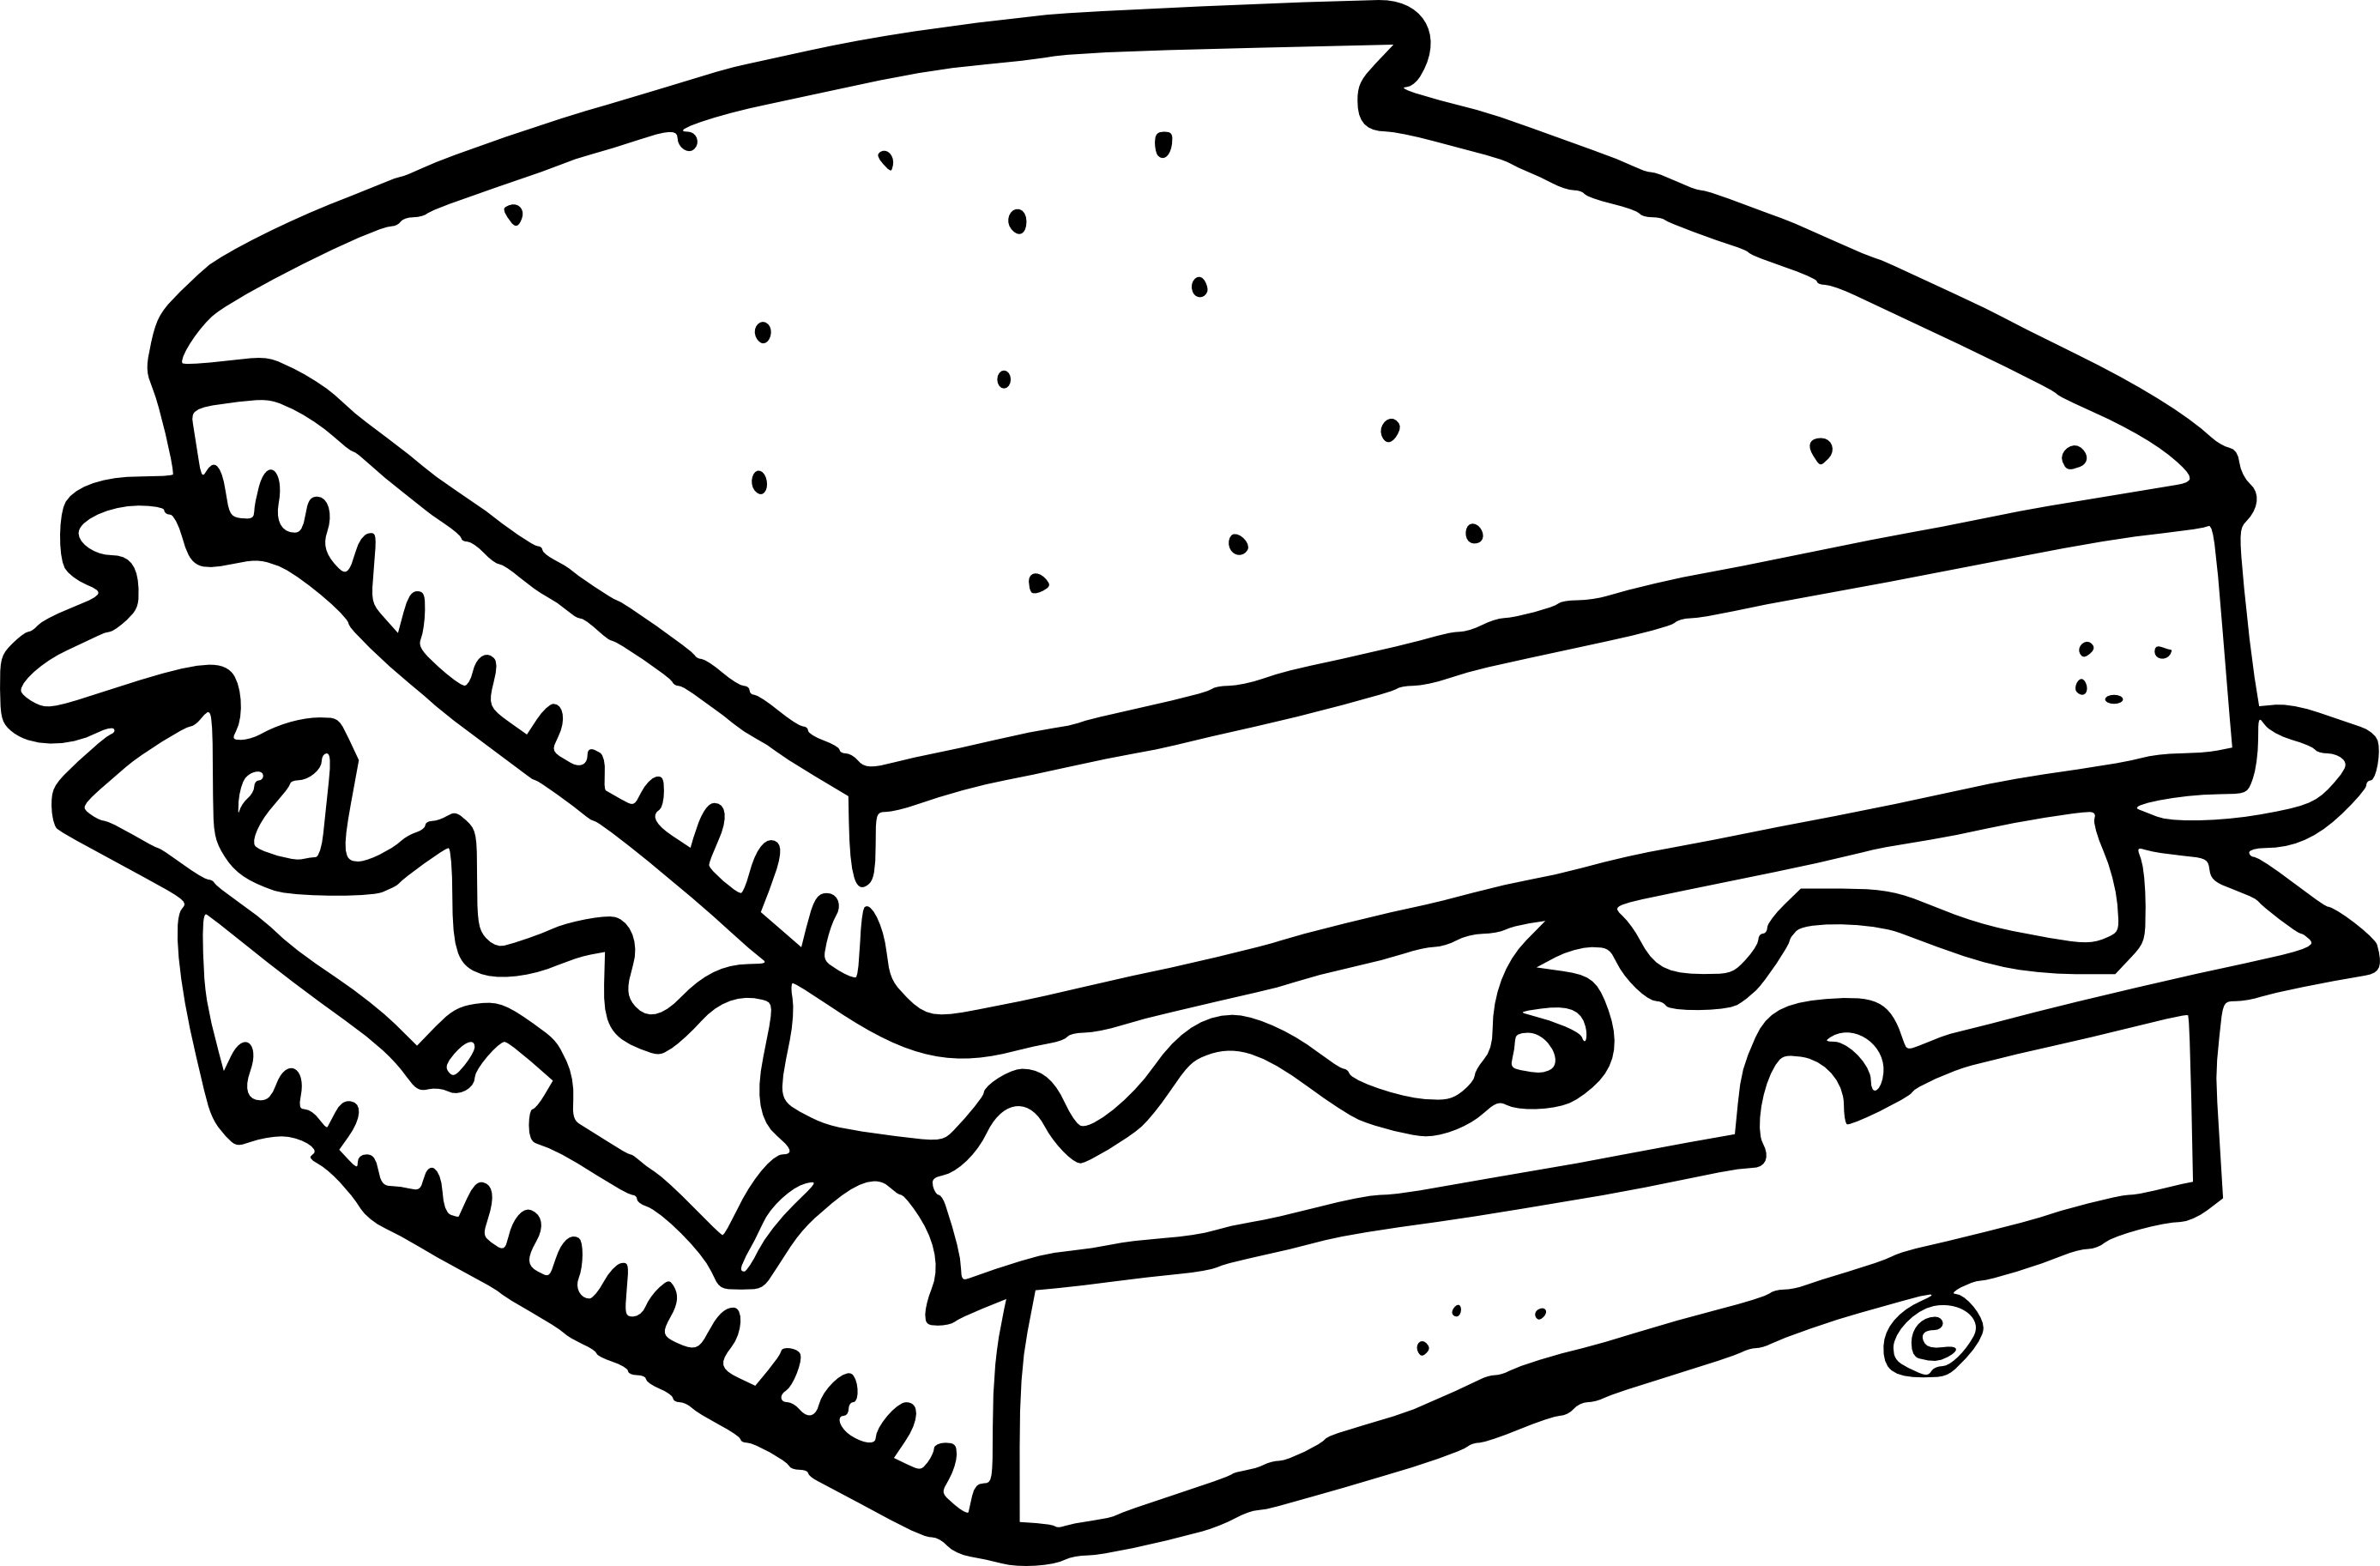 2774x1825 Grilled Cheese Sandwich Coloring Page Coloring